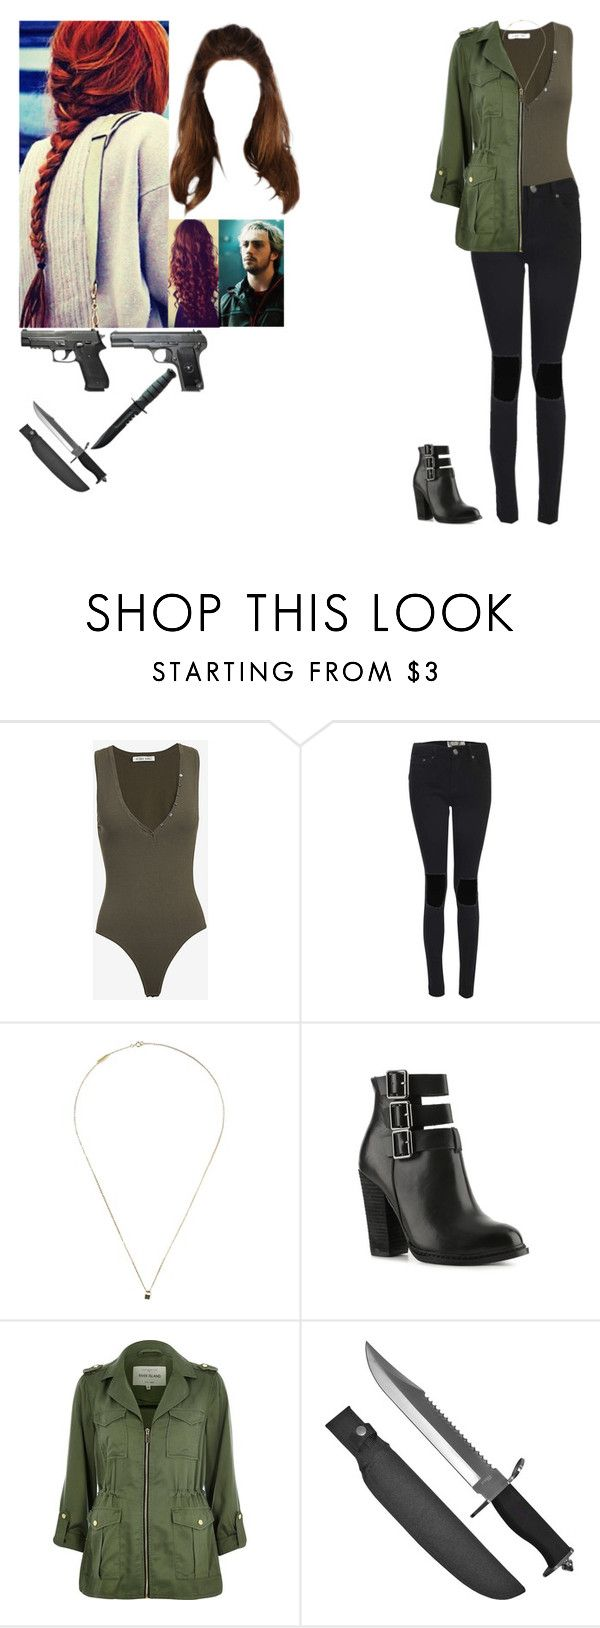 """""""Untitled #744"""" by grace-jaeger ❤ liked on Polyvore featuring Torn by Ronny Kobo, Lauren Klassen, Chinese Laundry, River Island, Whetstone Cutlery and Quiksilver"""